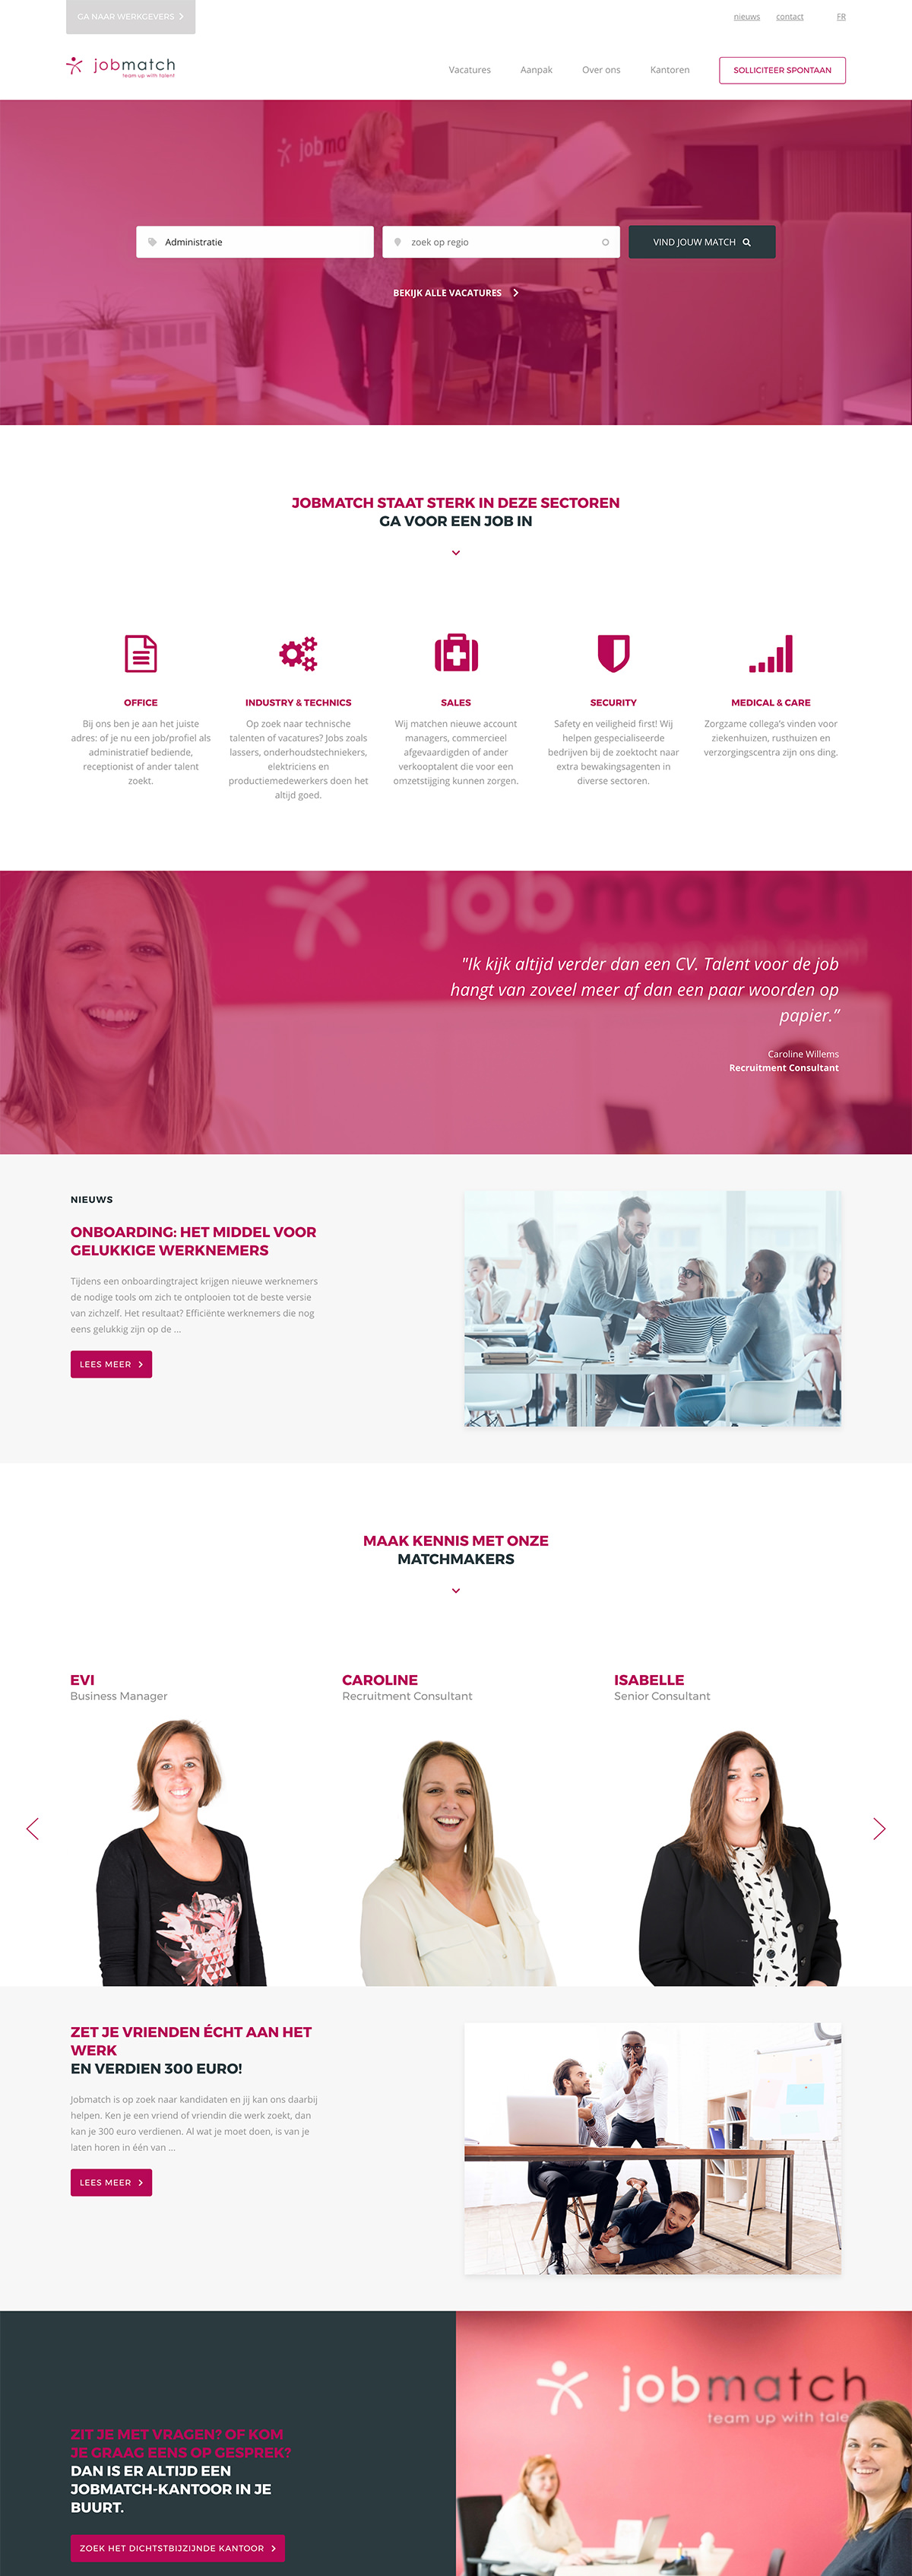 Jobmatch website